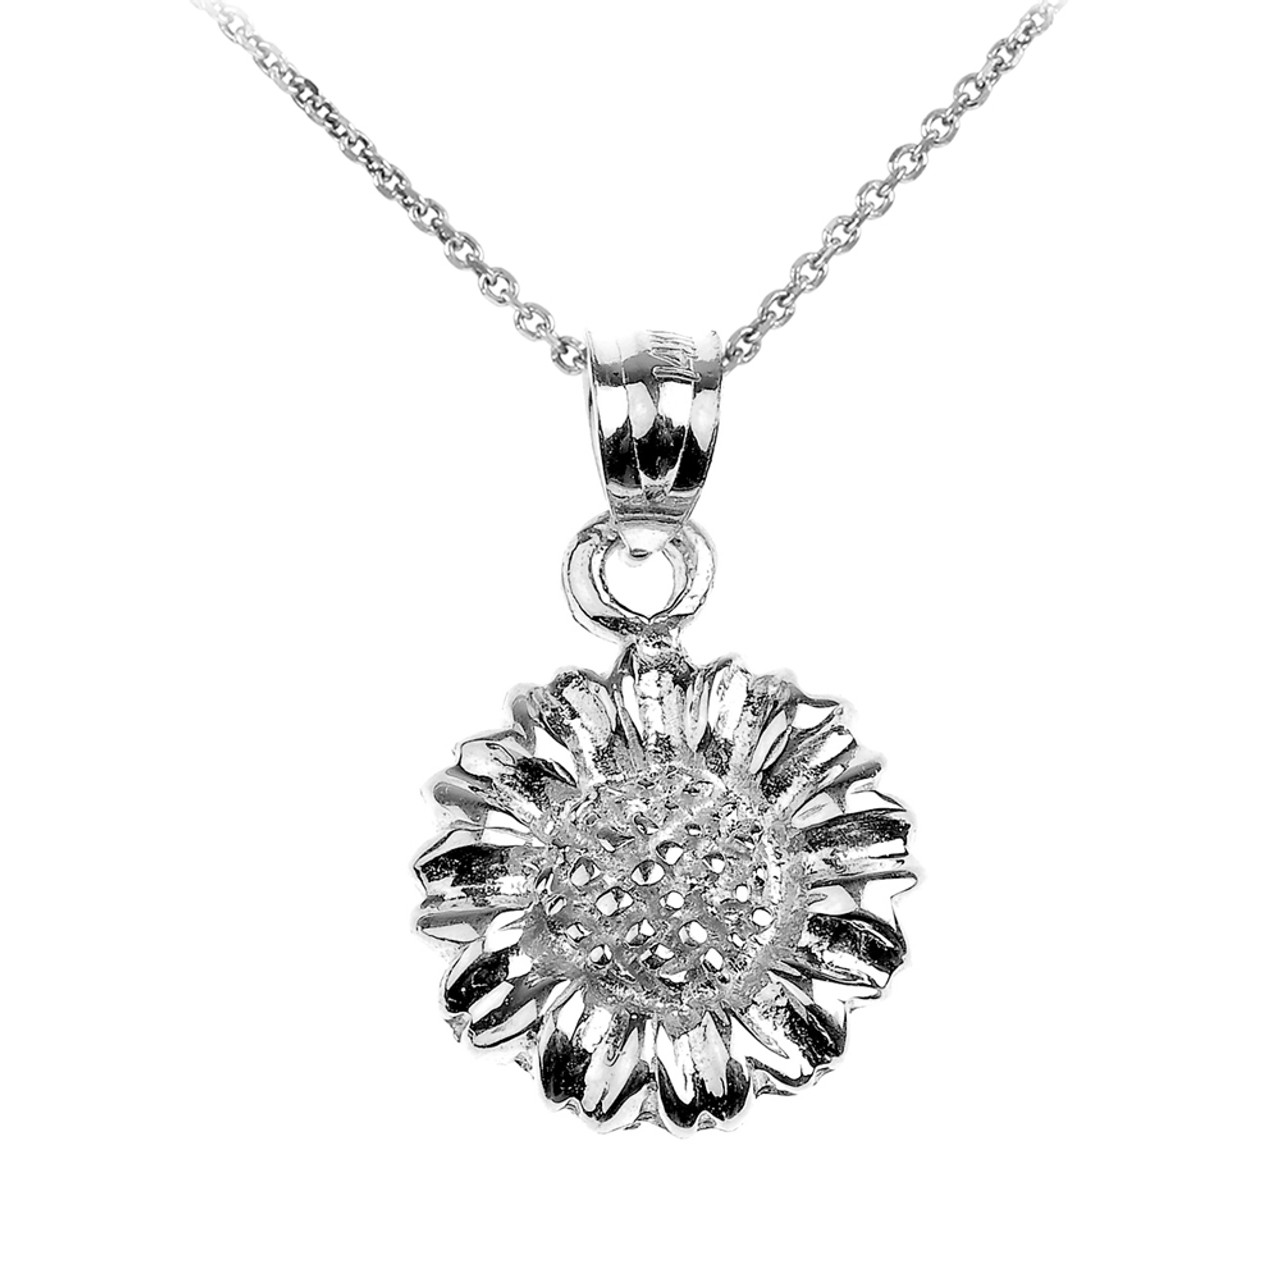 Silver sunflower charm pendant necklace sterling silver sunflower charm pendant necklace aloadofball Gallery